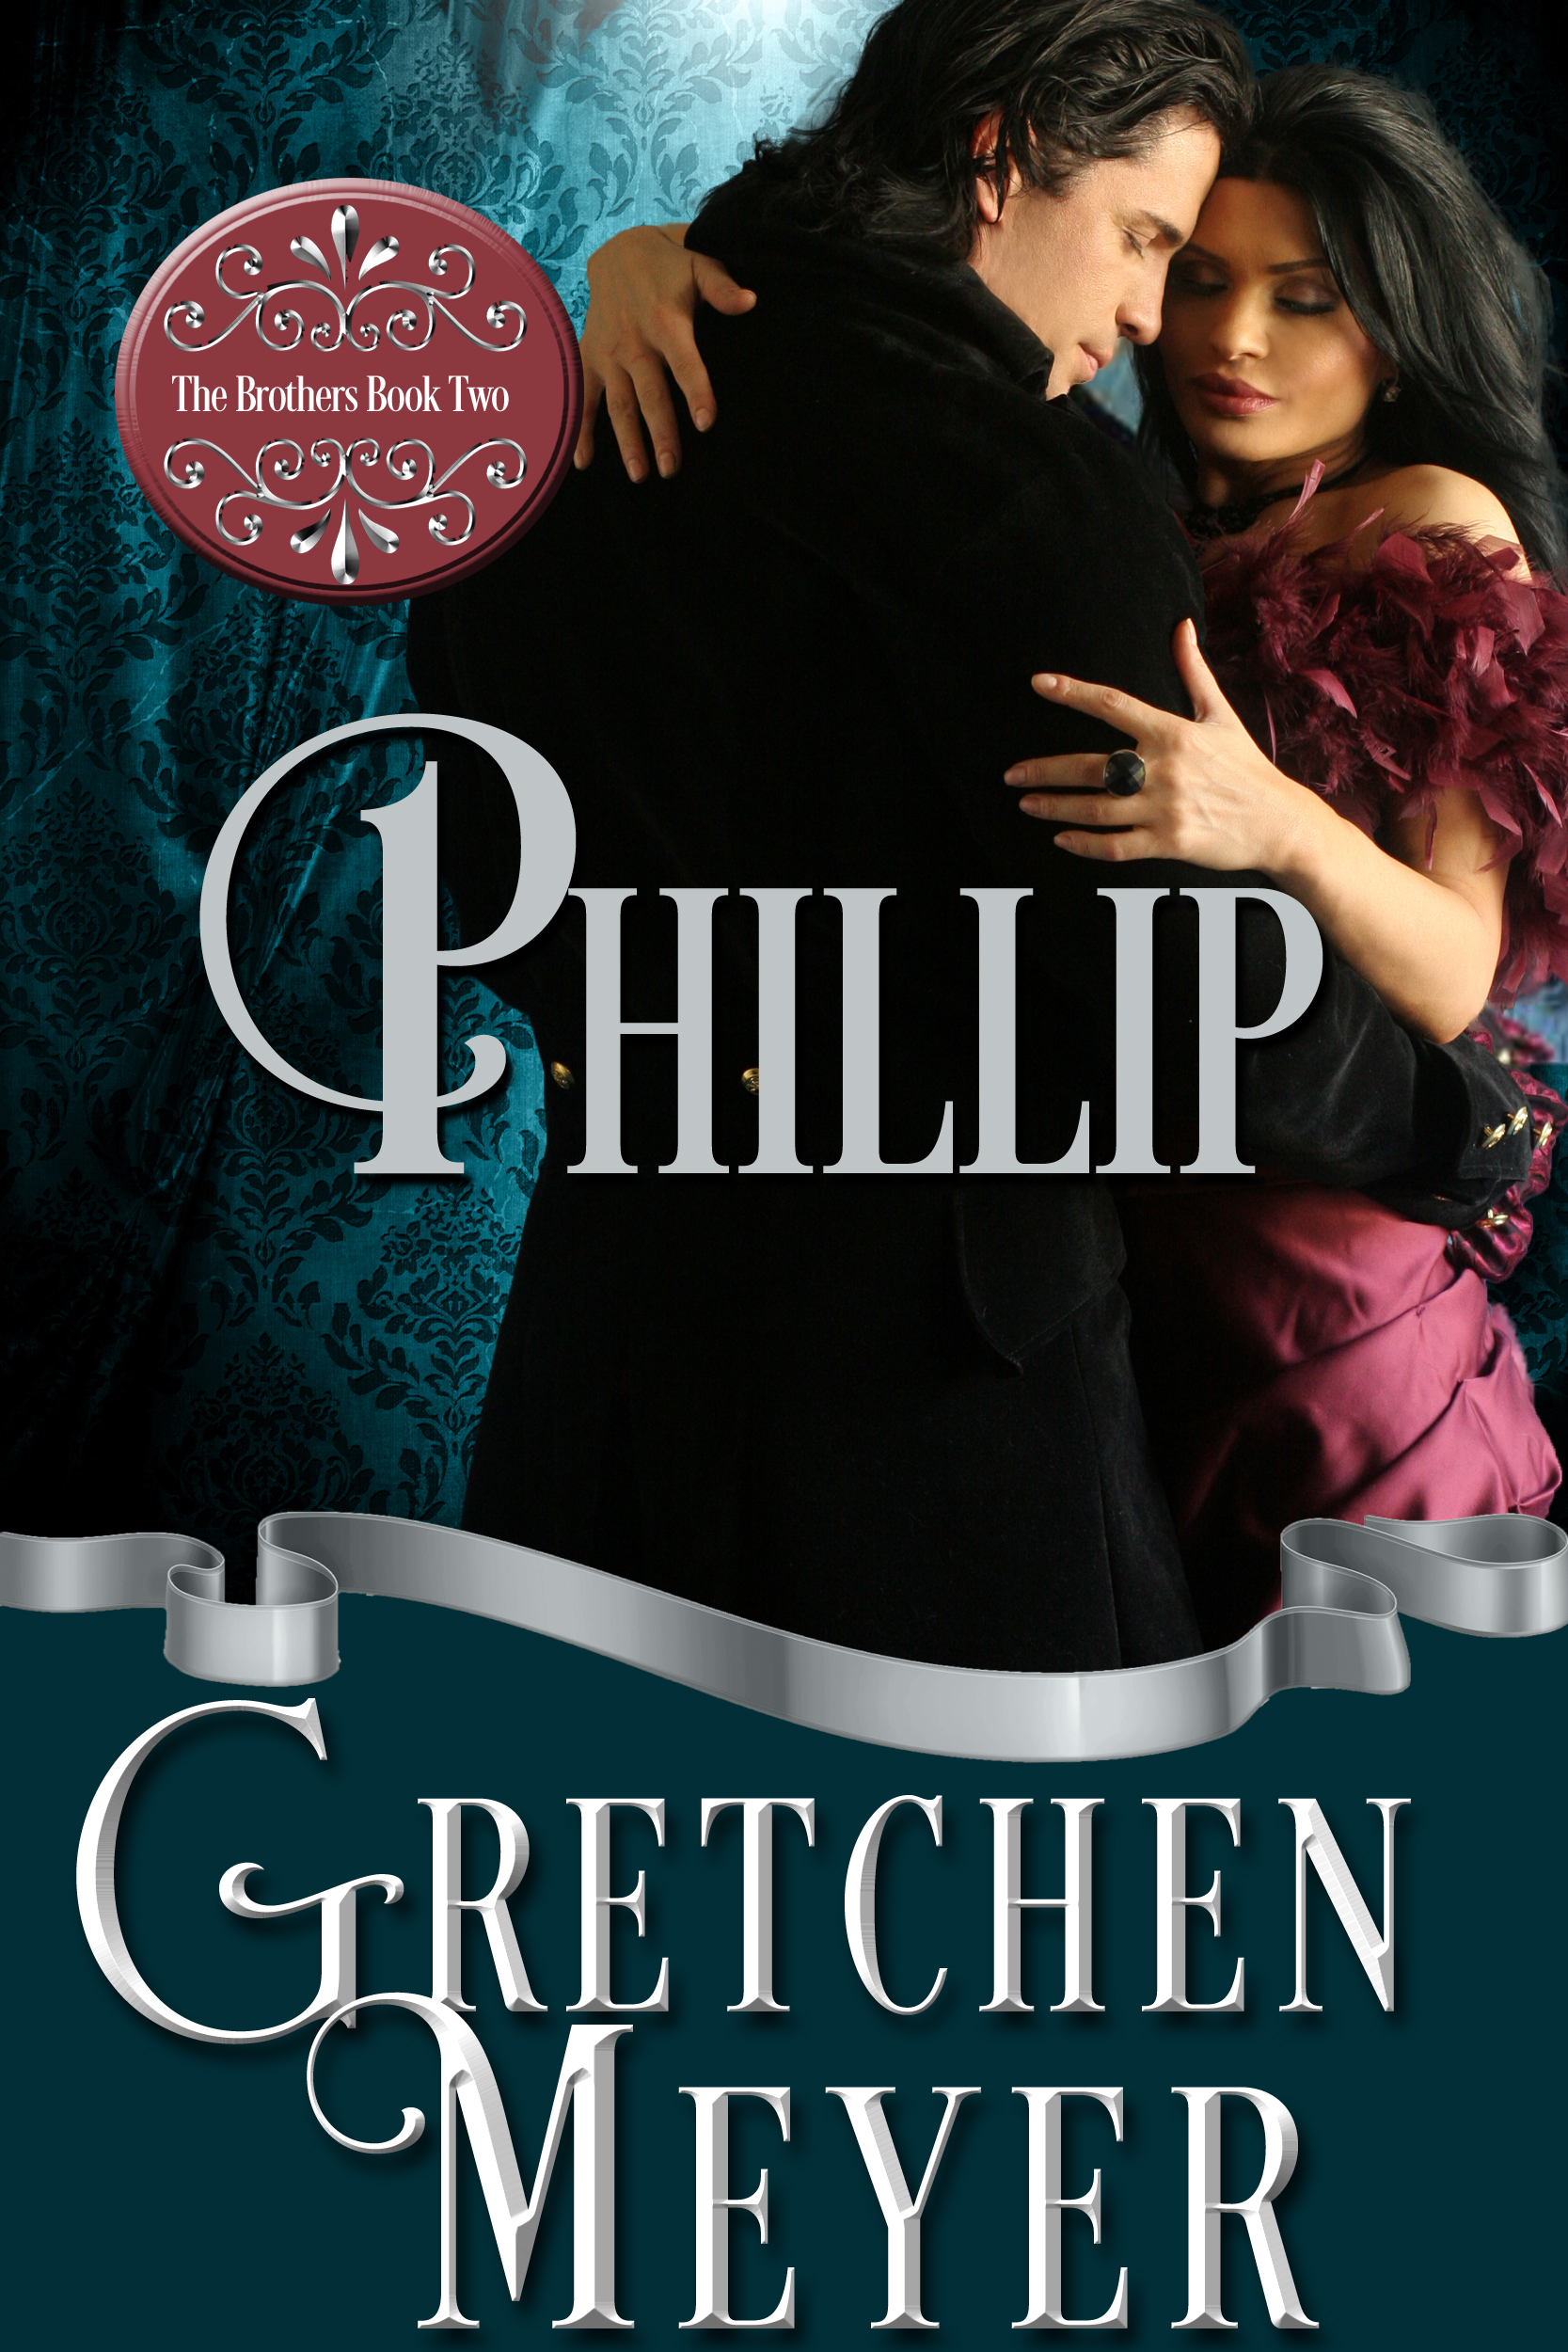 Front cover of the novel Phillip by Gretchen Meyer